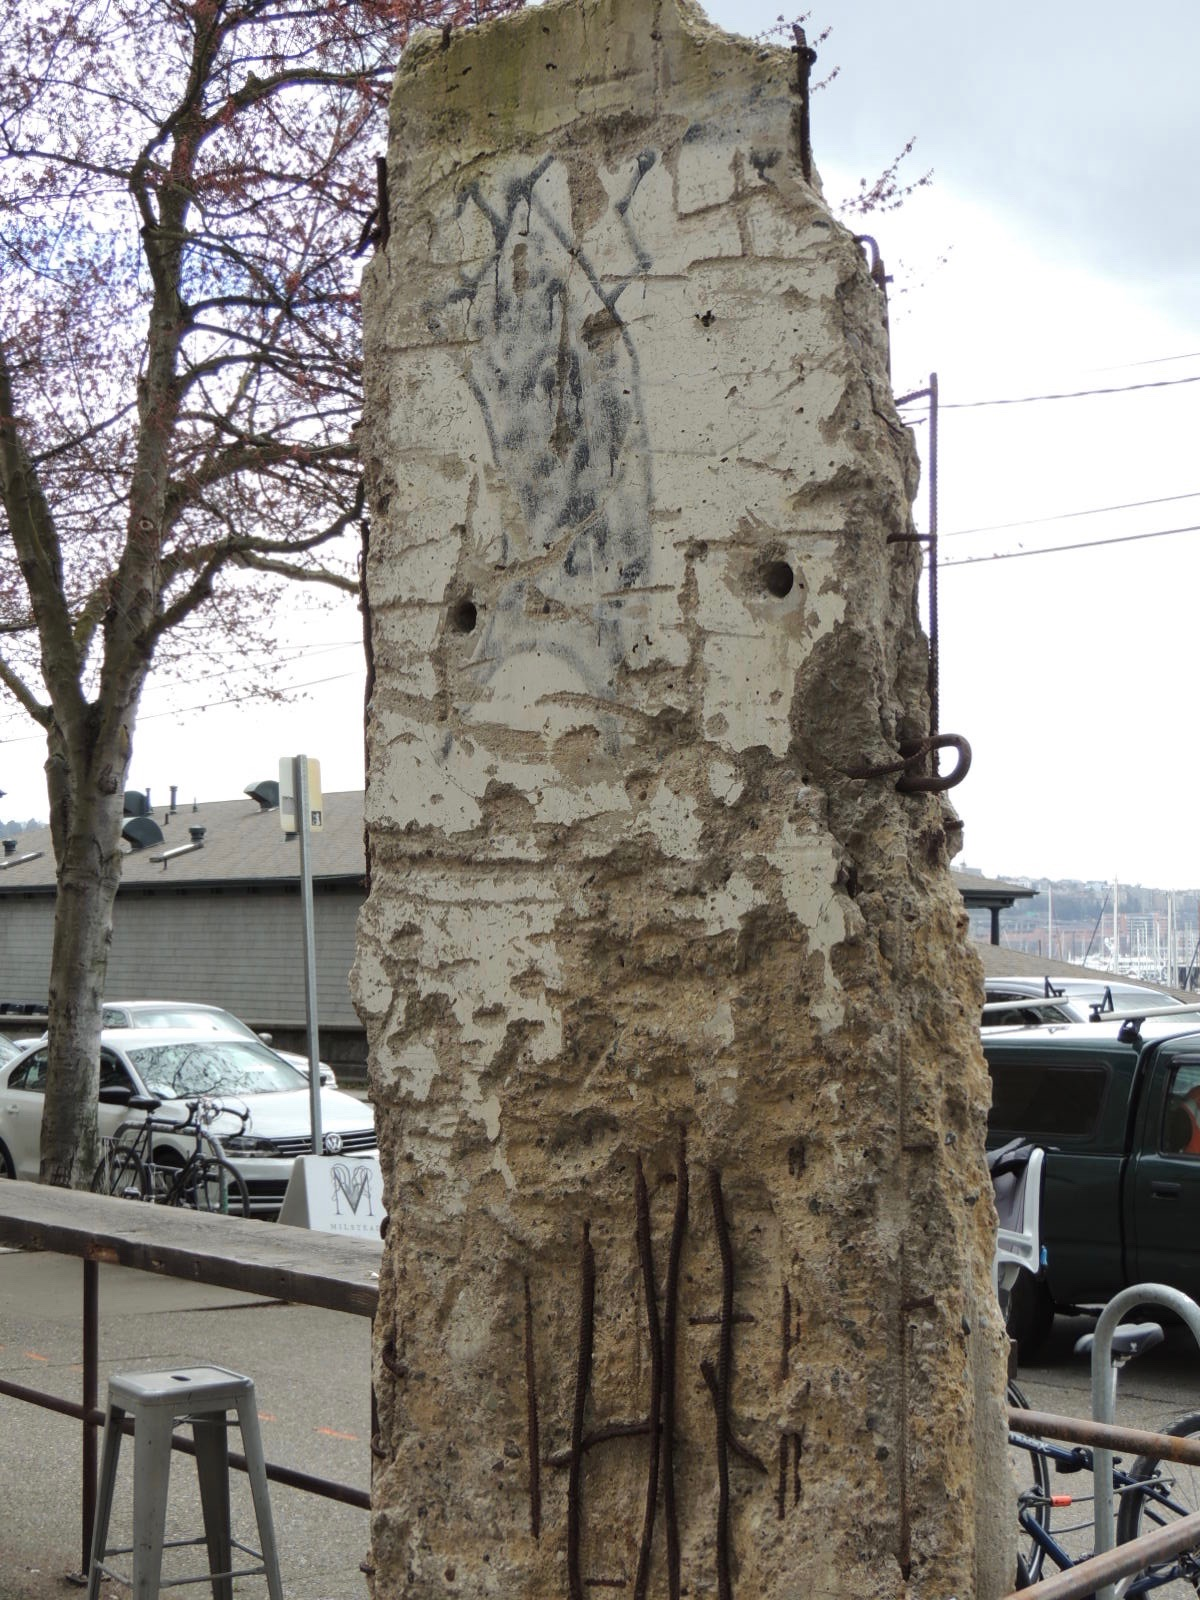 Back view of the piece from the Berlin Wall left when History House Museum closed.